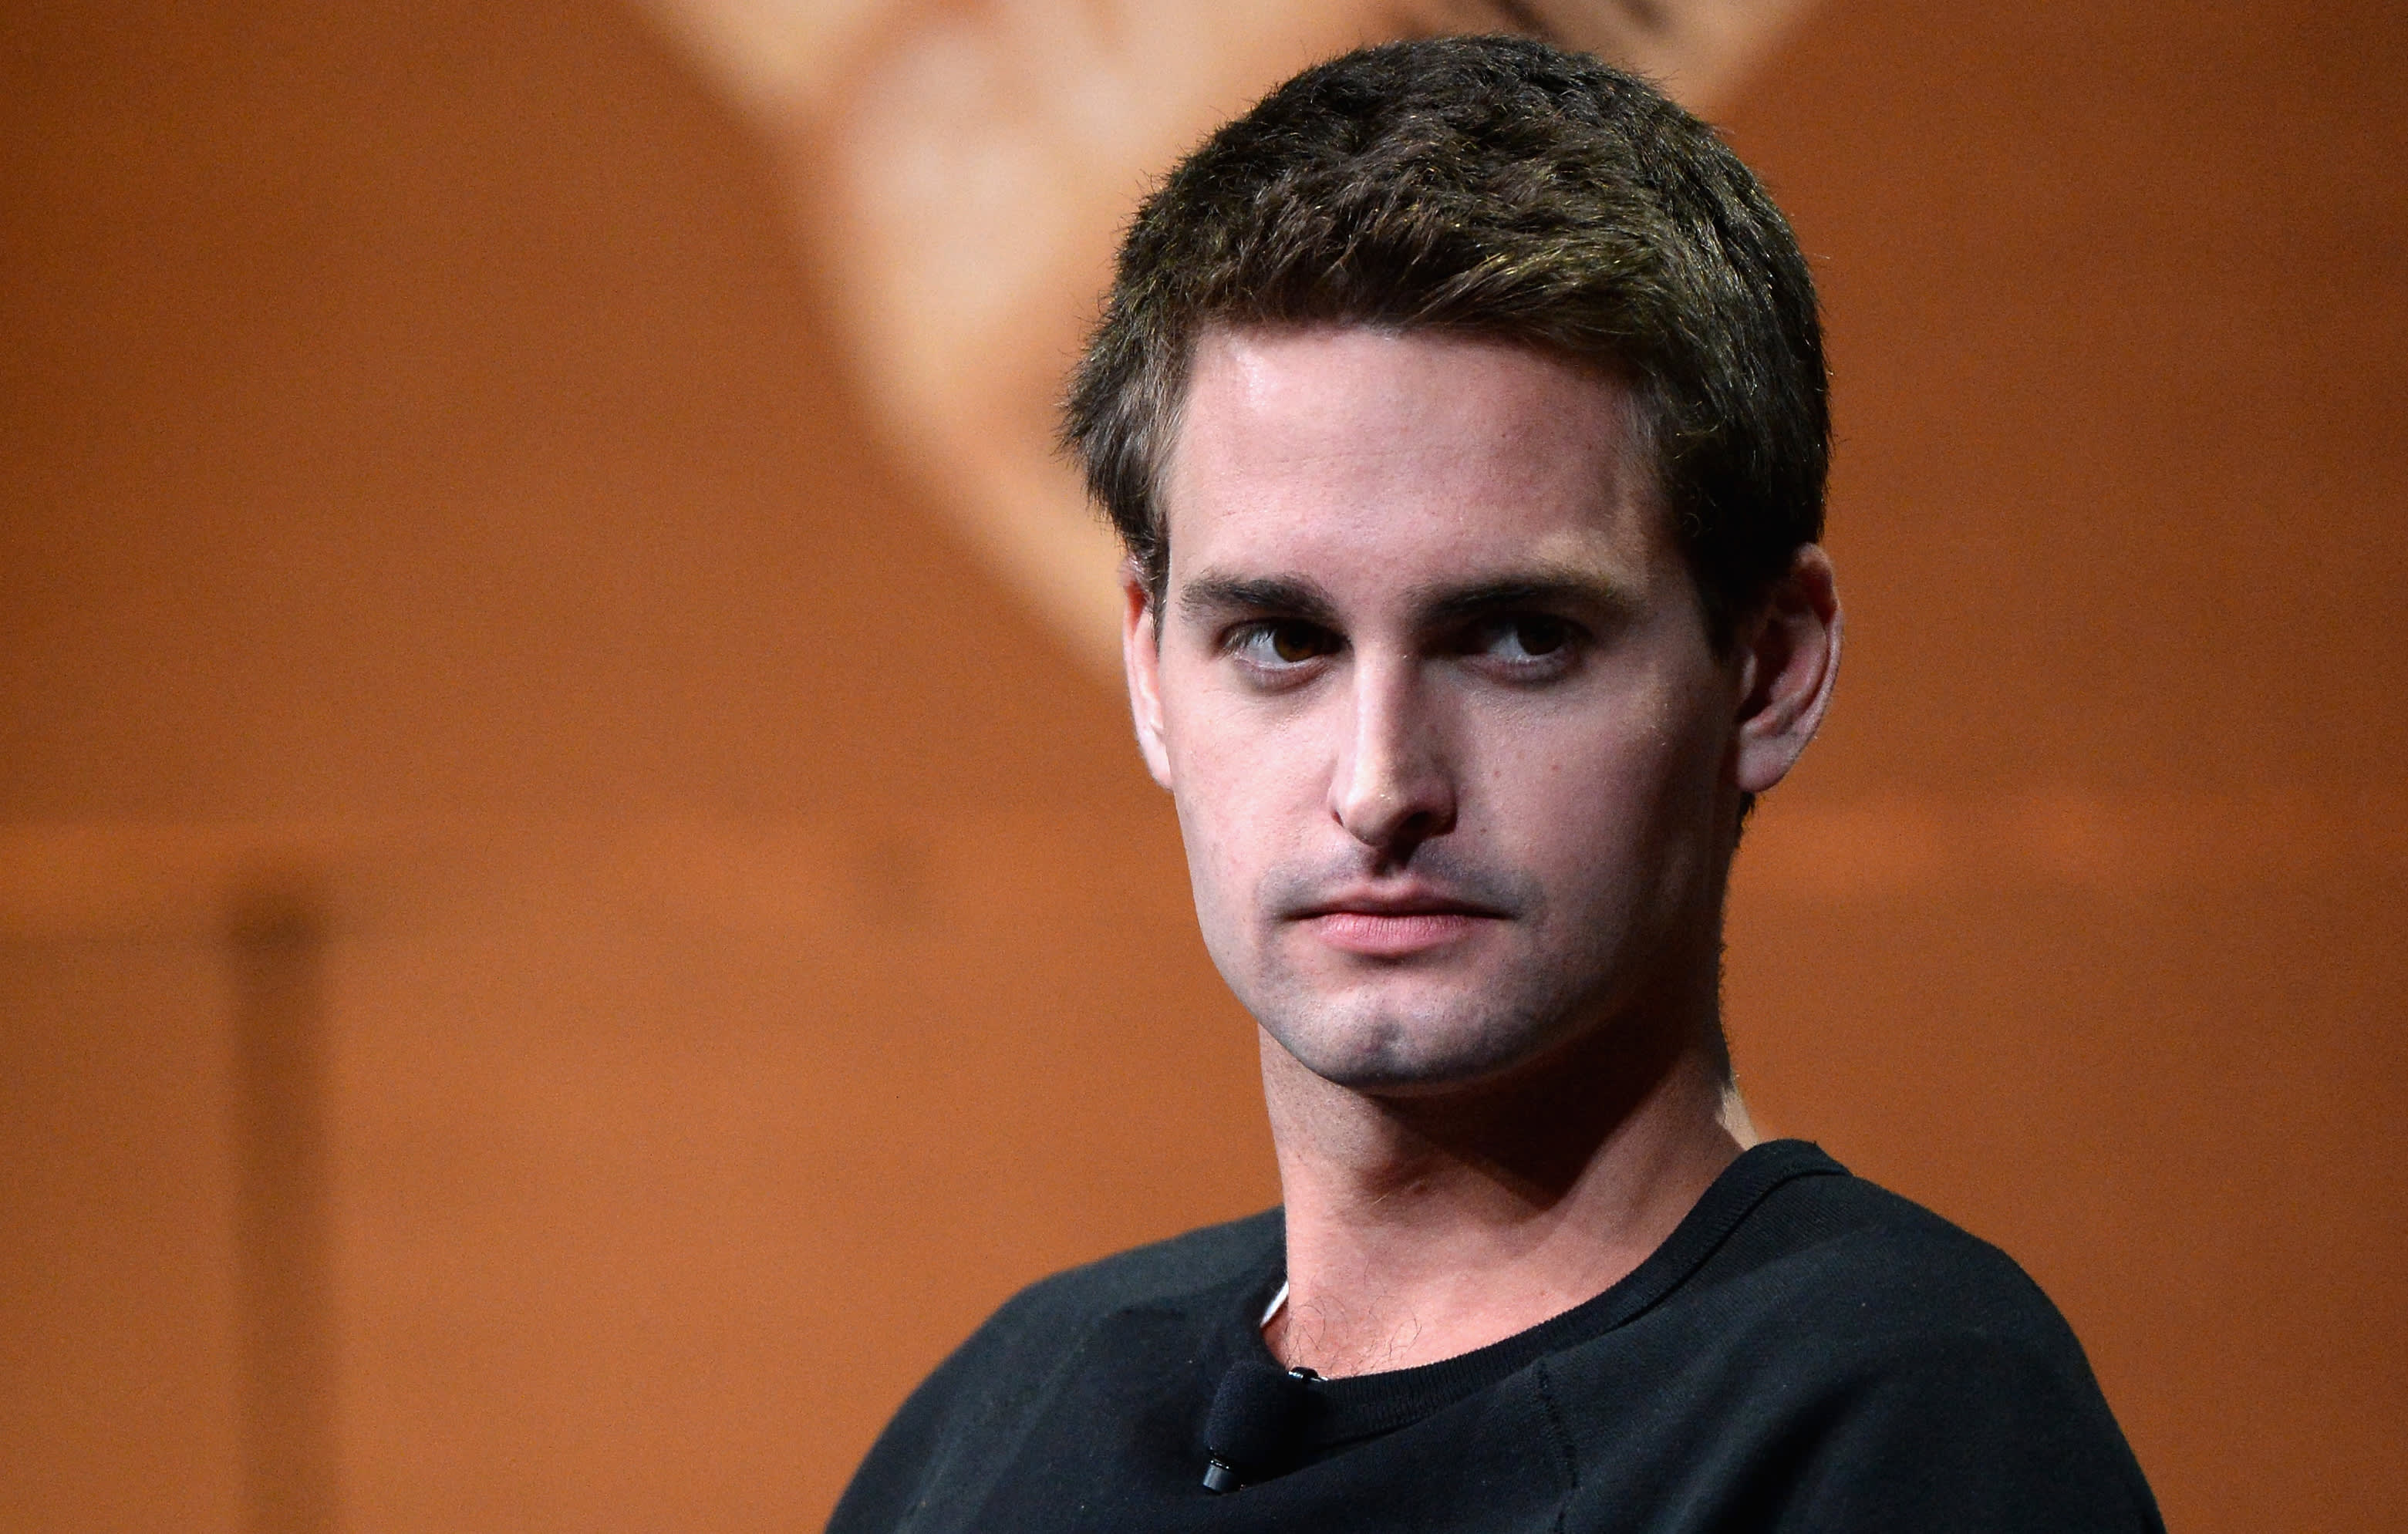 Snap just got an upgrade, but analysts warn TikTok is a looming risk in the fight for social media ad dollars